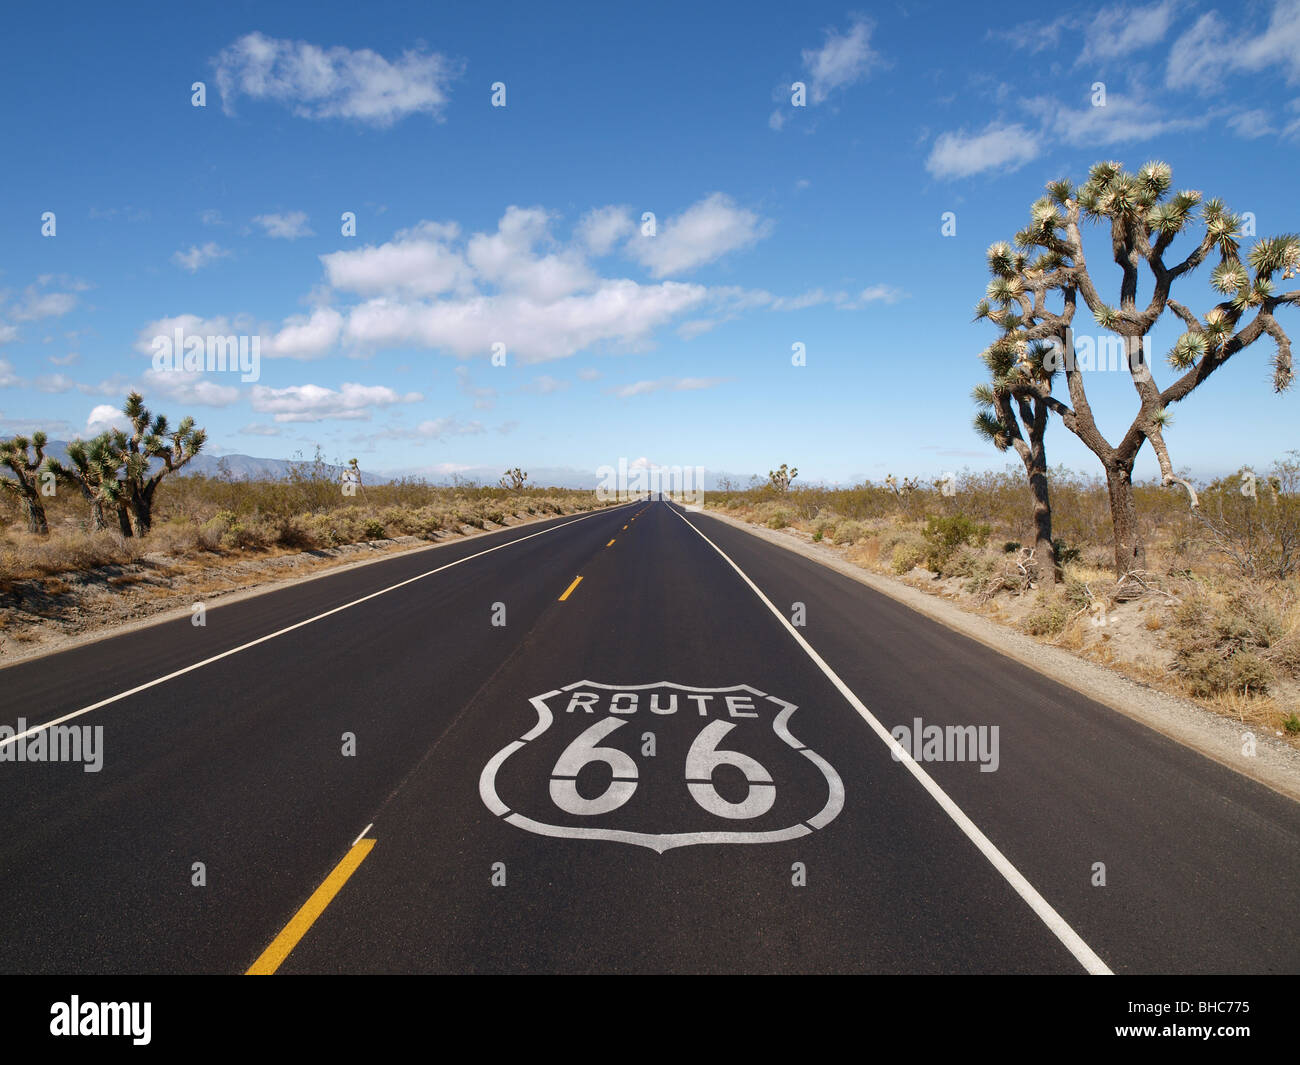 Route 66 pavement sign with Joshua Trees in Southern California. - Stock Image